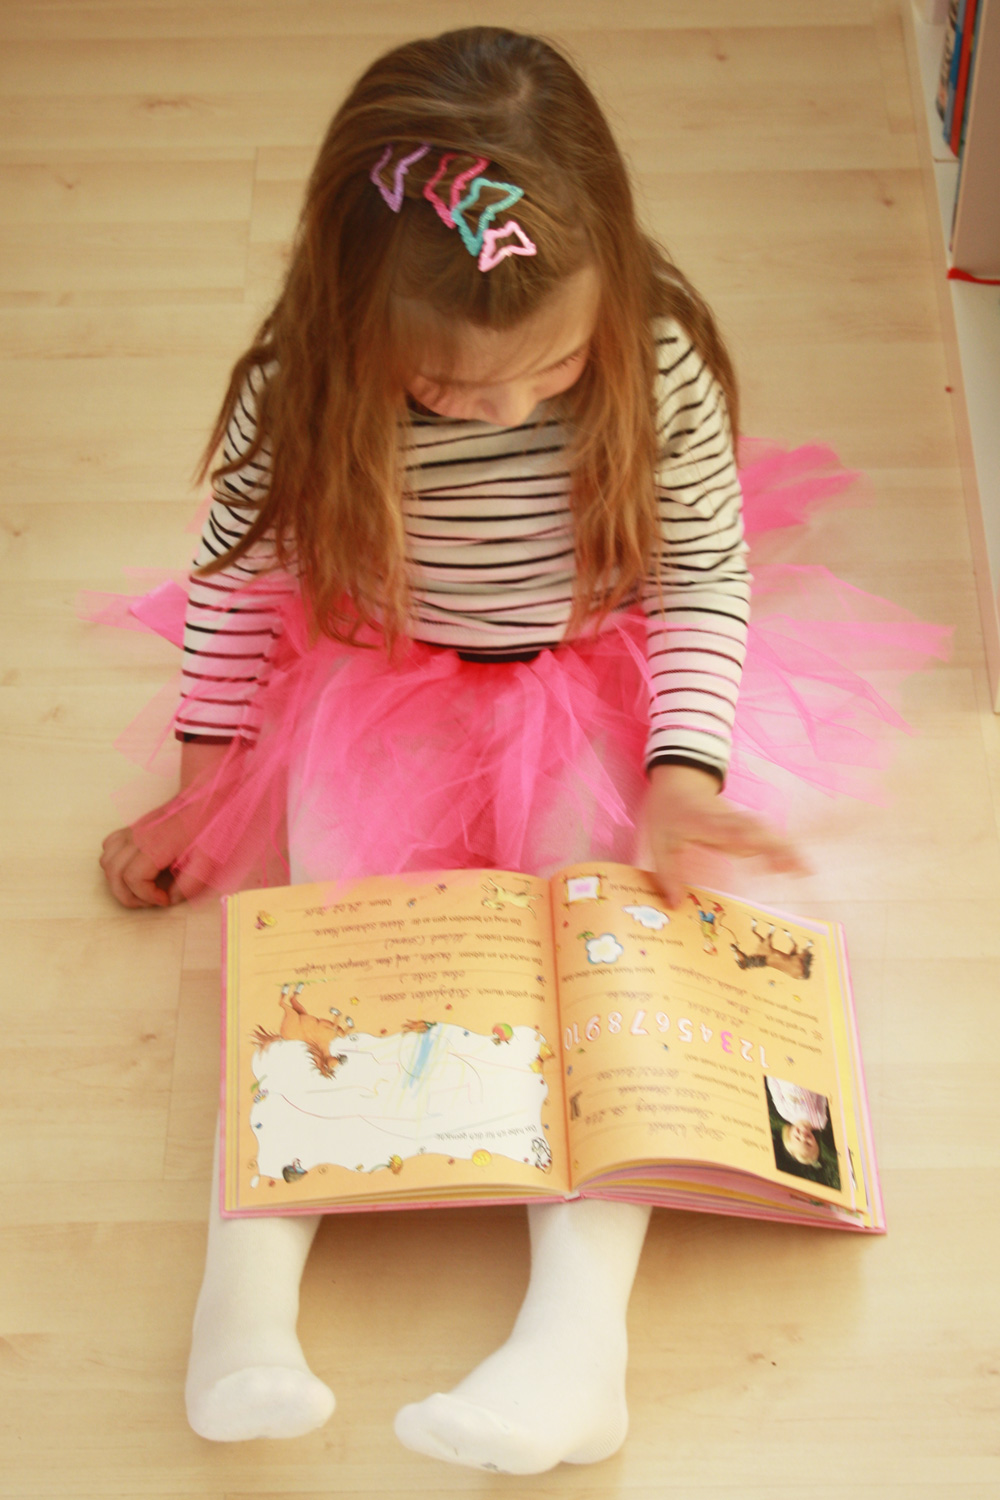 kids diy ballerina tutu ohne n hen selber machen. Black Bedroom Furniture Sets. Home Design Ideas